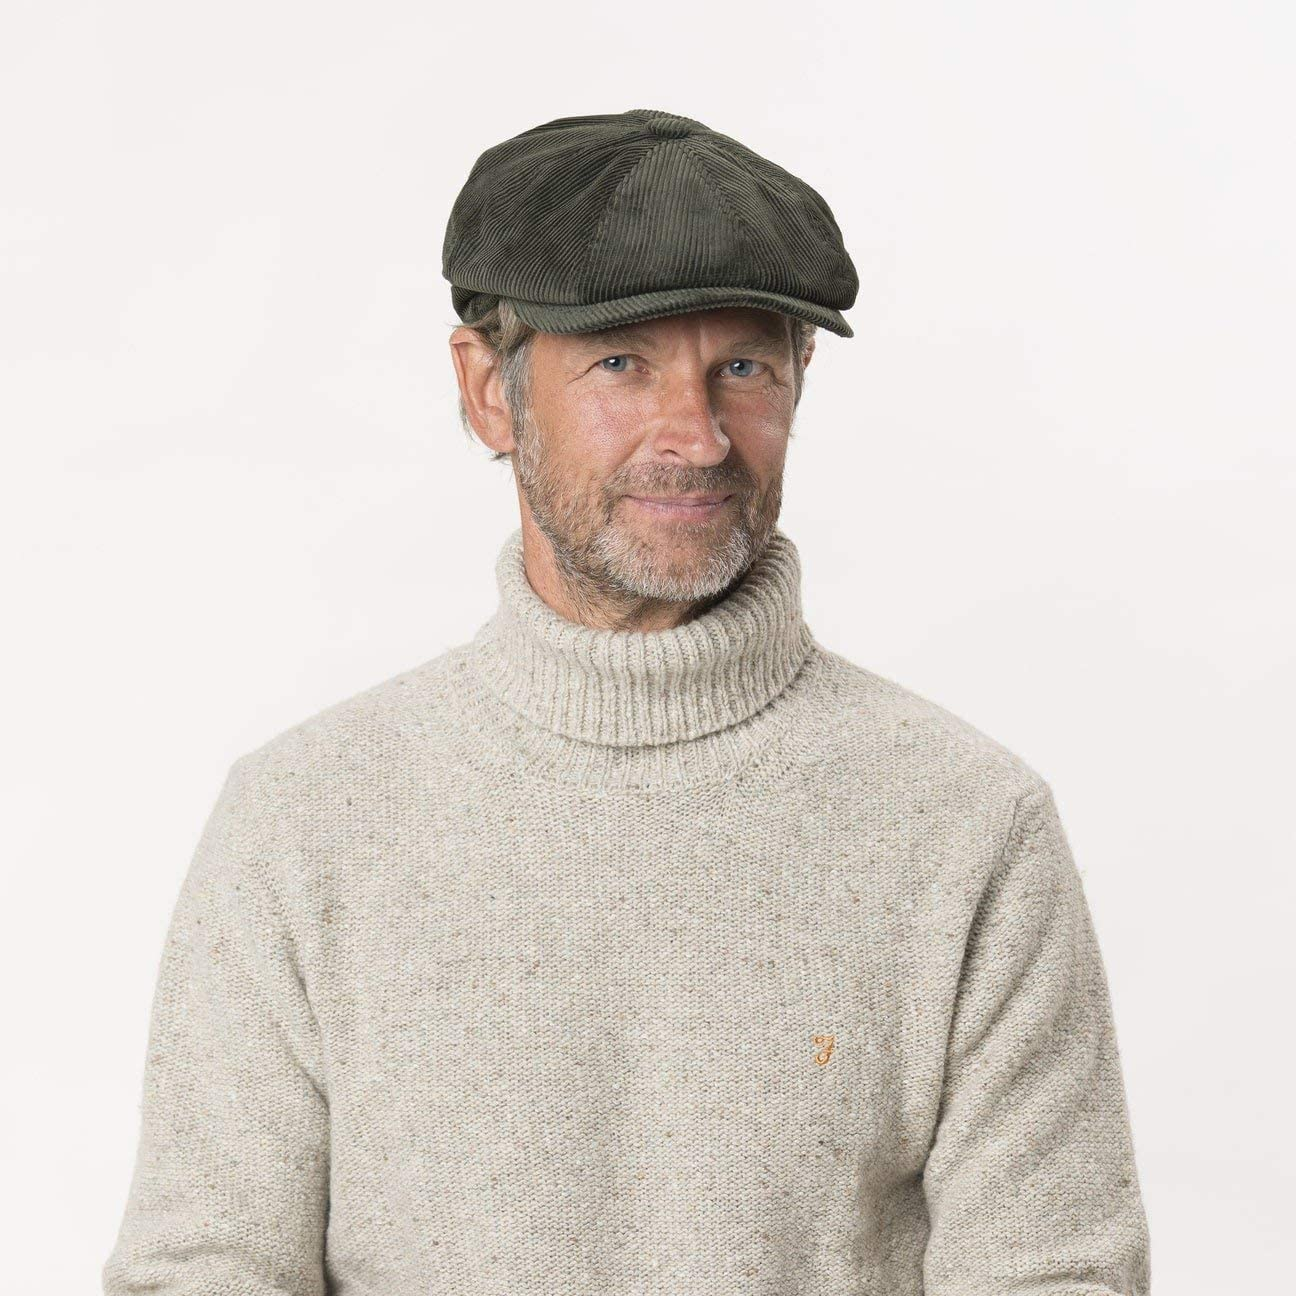 Cord Men`s Cap with Quilted Lining Autumn//Winter 56-57 cm Newsboy Cap Made of Cotton Made in Italy Peaked Ivy Cap Olive M Lipodo Cordial Flat Cap